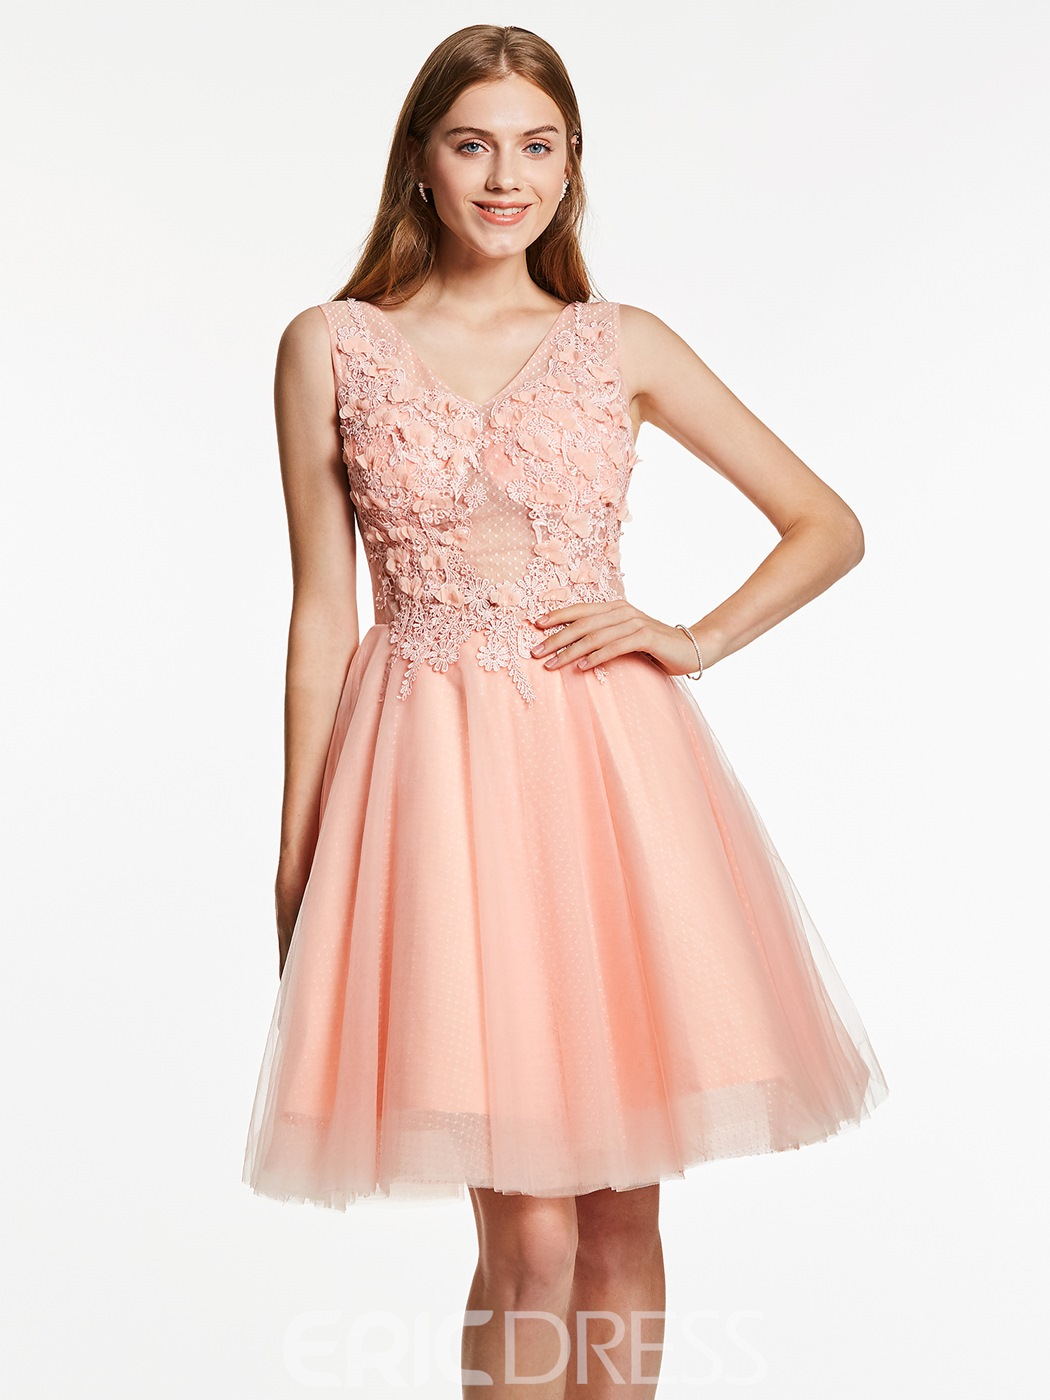 Ericdres A-Line V-Neck Appliques Beaded Flowers Short Homecoming Dress